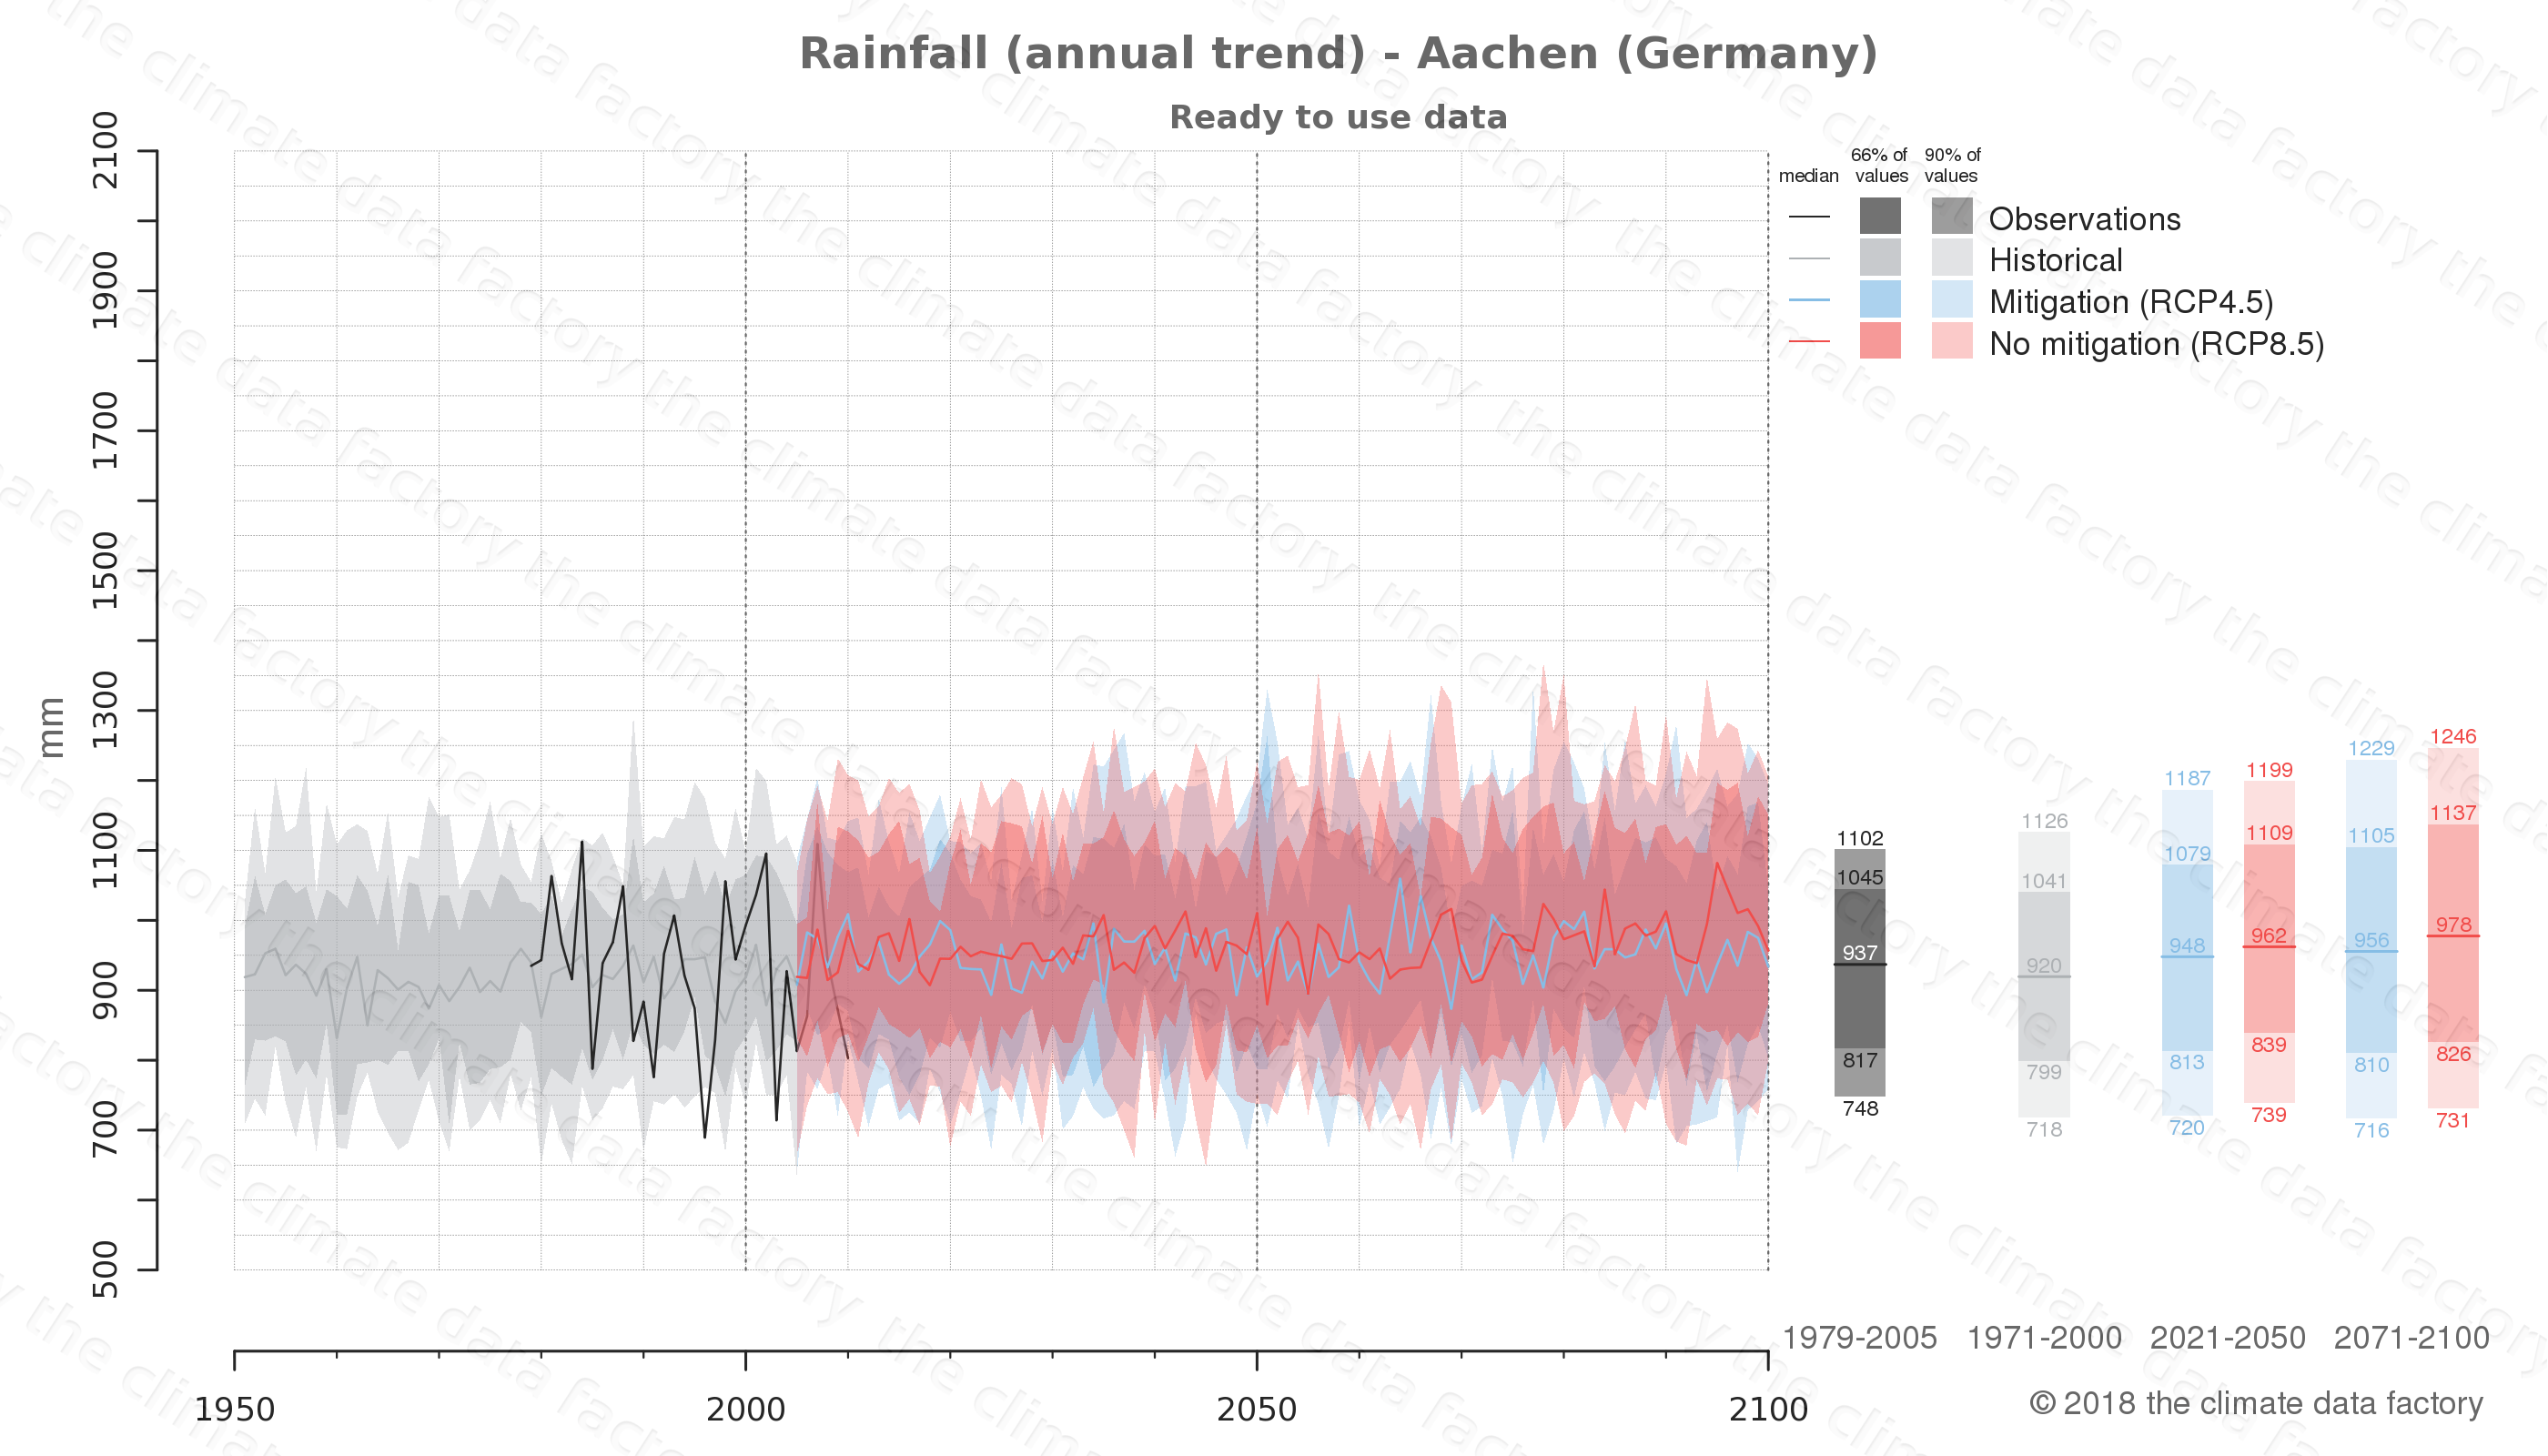 climate change data policy adaptation climate graph city data rainfall aachen germany